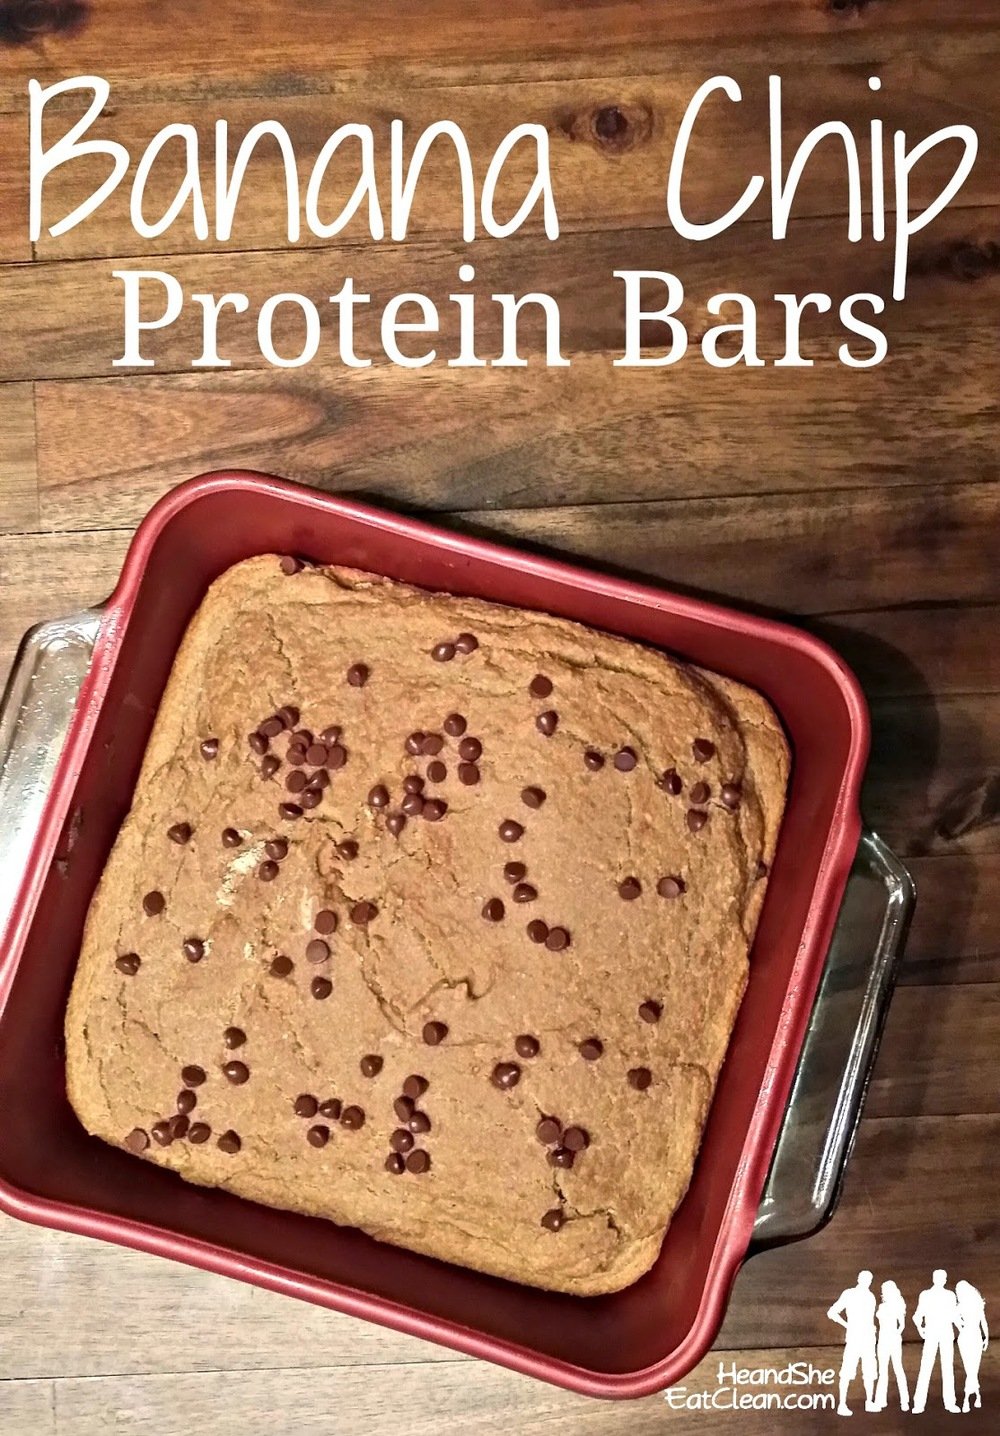 banana chocolate chip protein bars in a red dish place on a wooden table